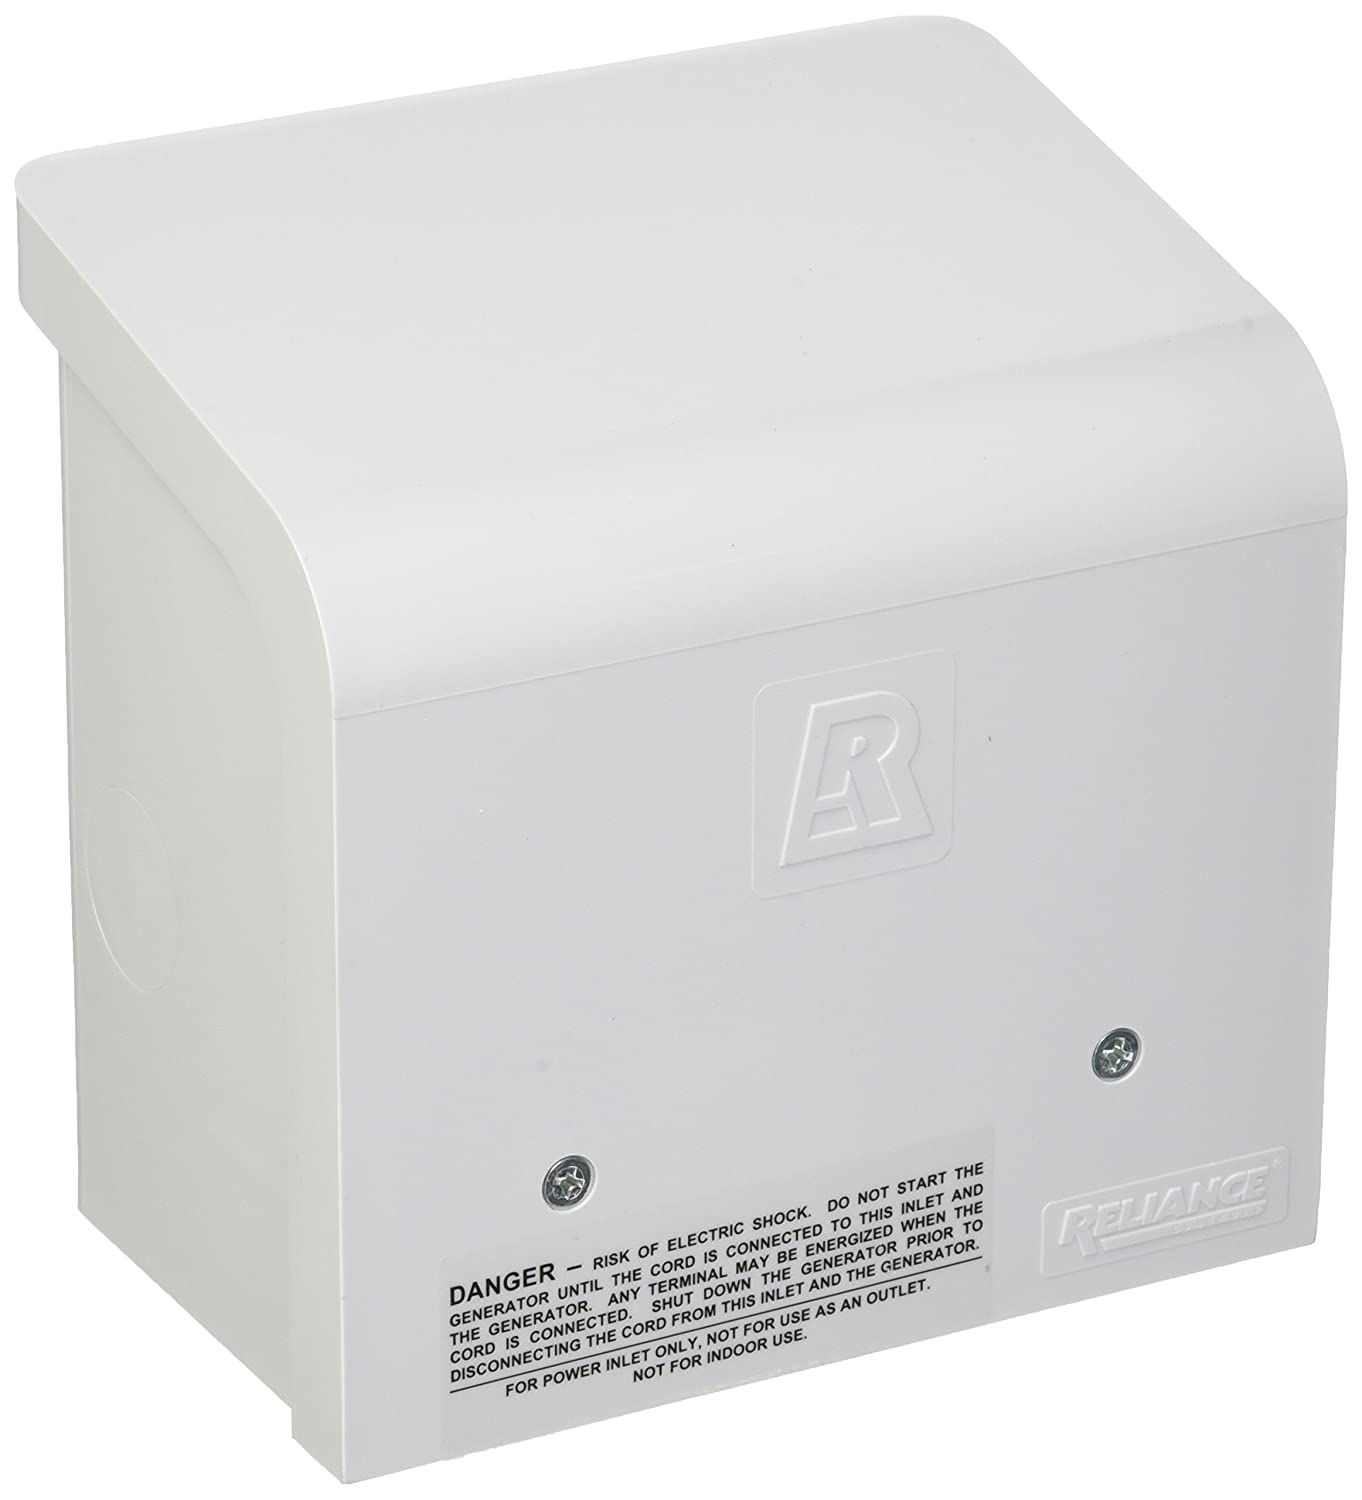 Reliance Controls Corporation PBN30 30-Amp NEMA 3R Power Inlet Box for Generators Up to 7,500 Running Watts